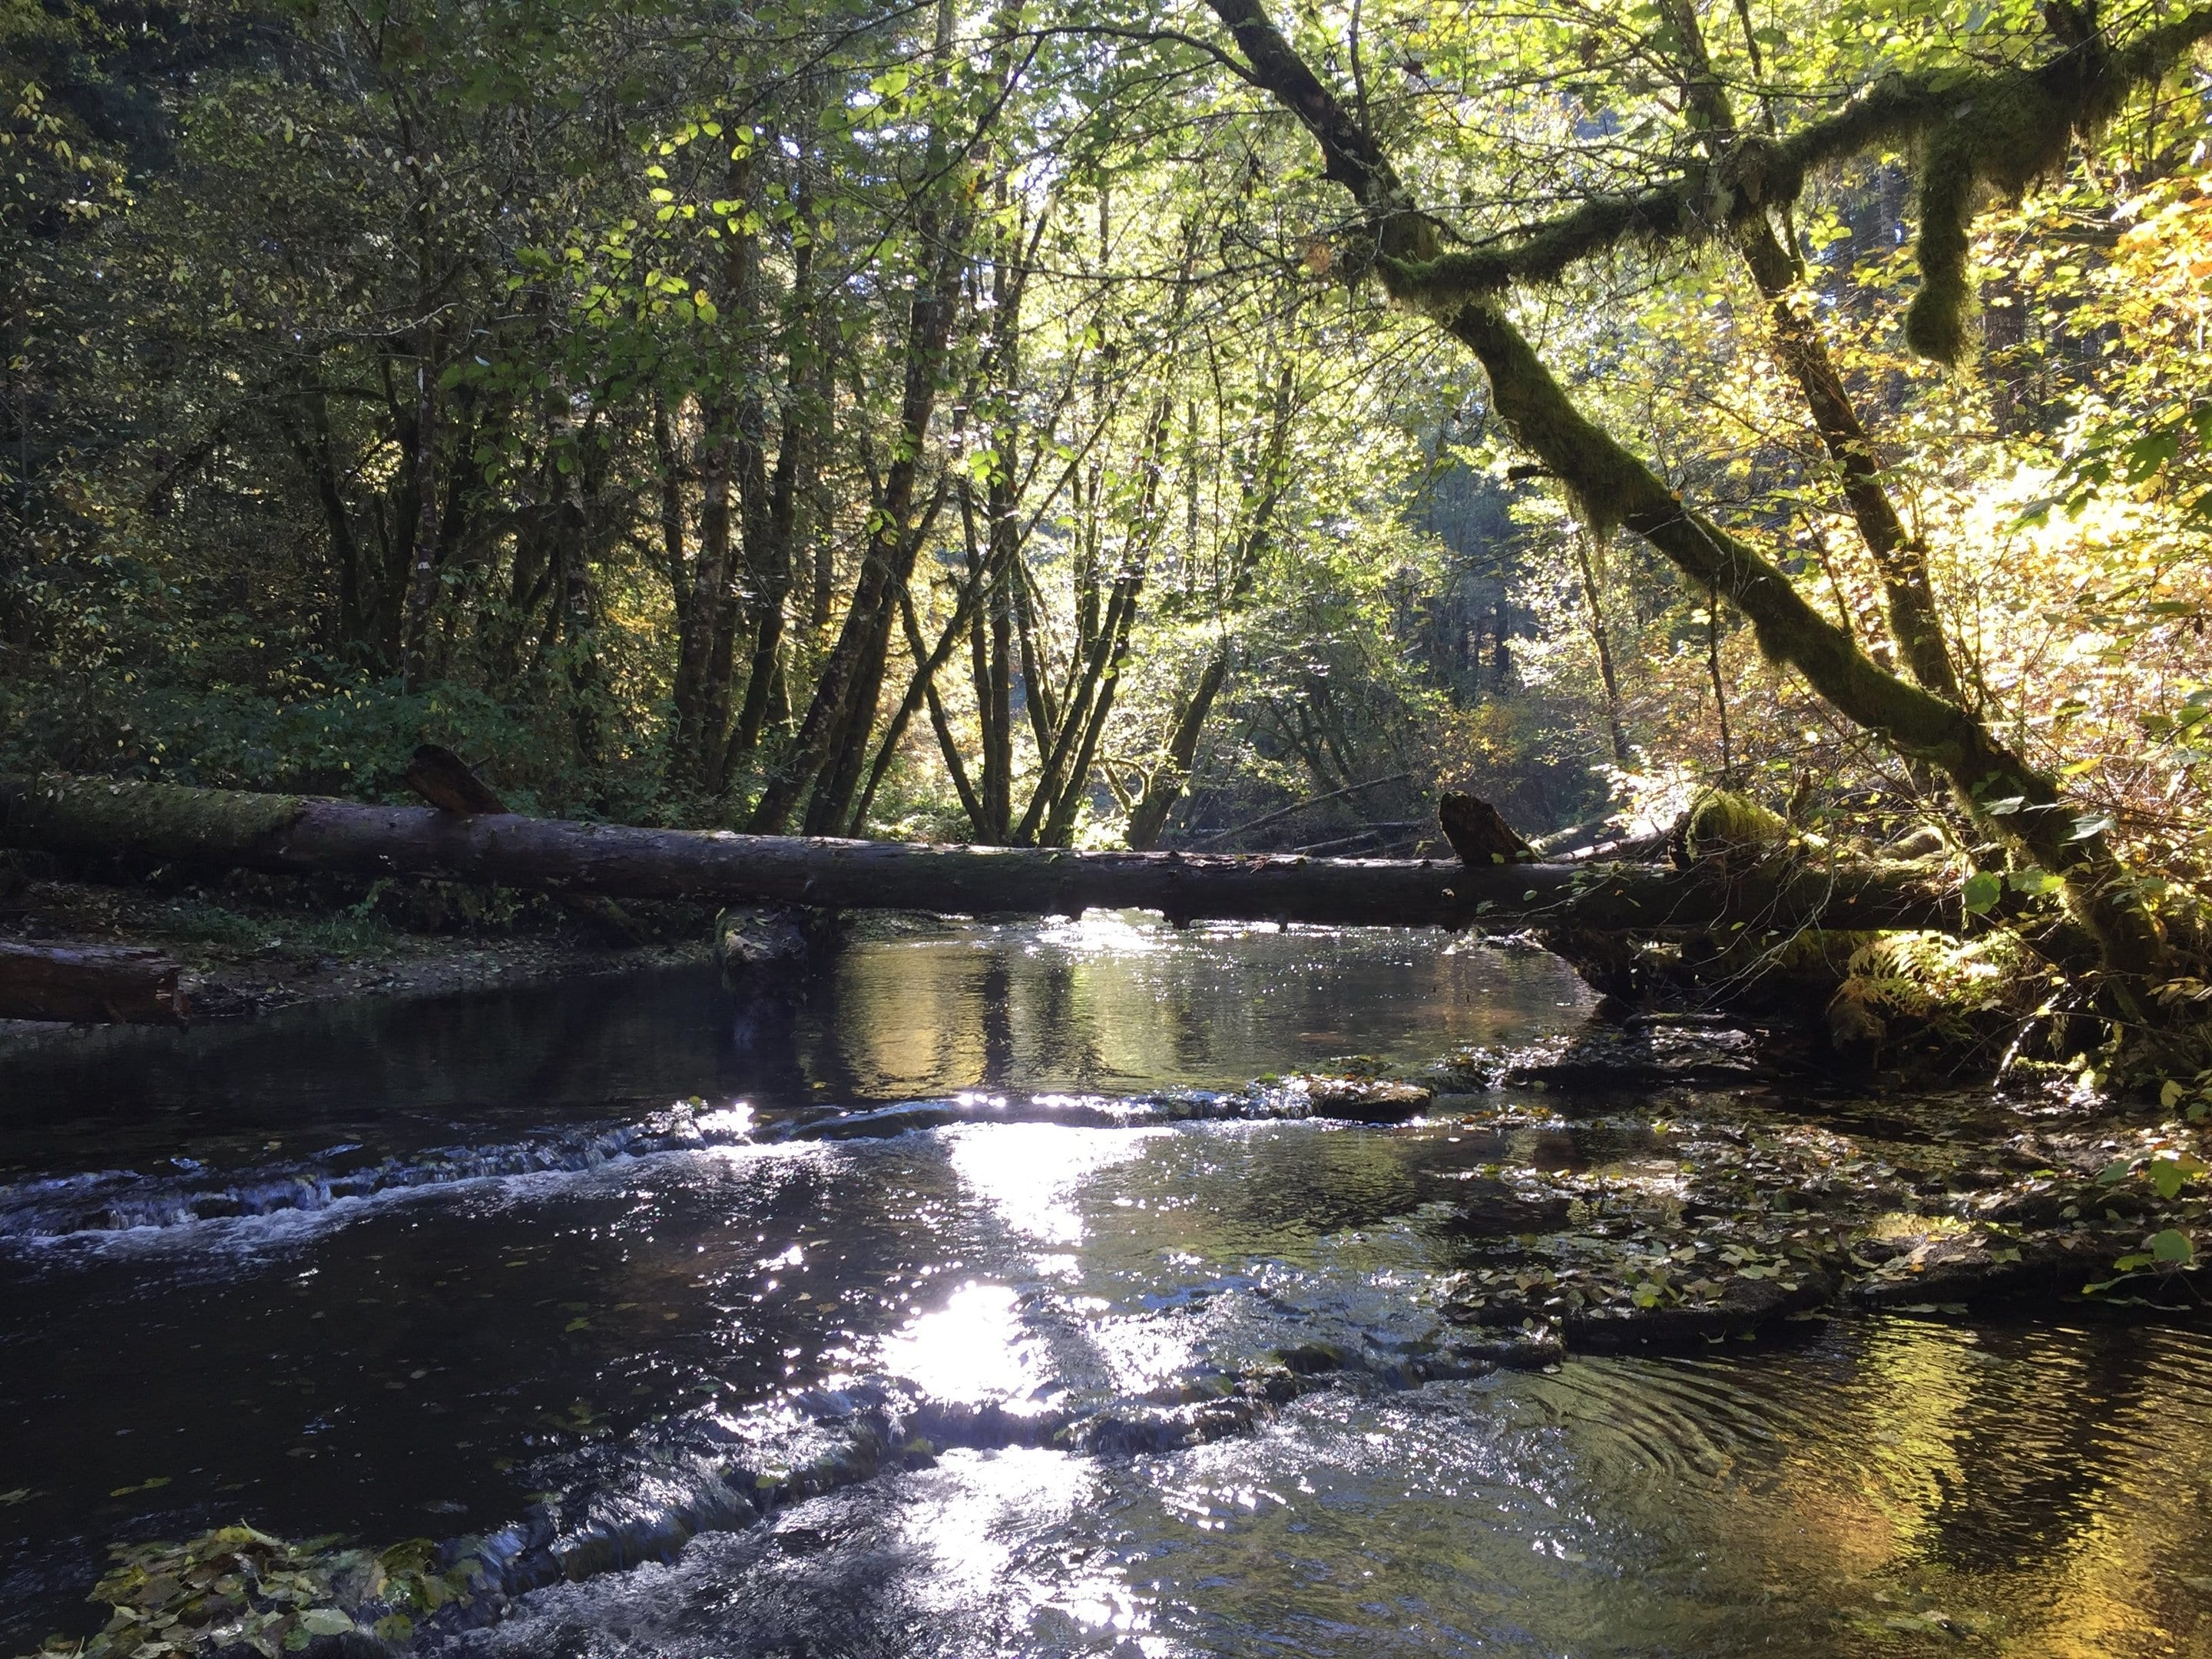 Watershed Groups Have a Positive Impact on Local Water Quality, Study Finds